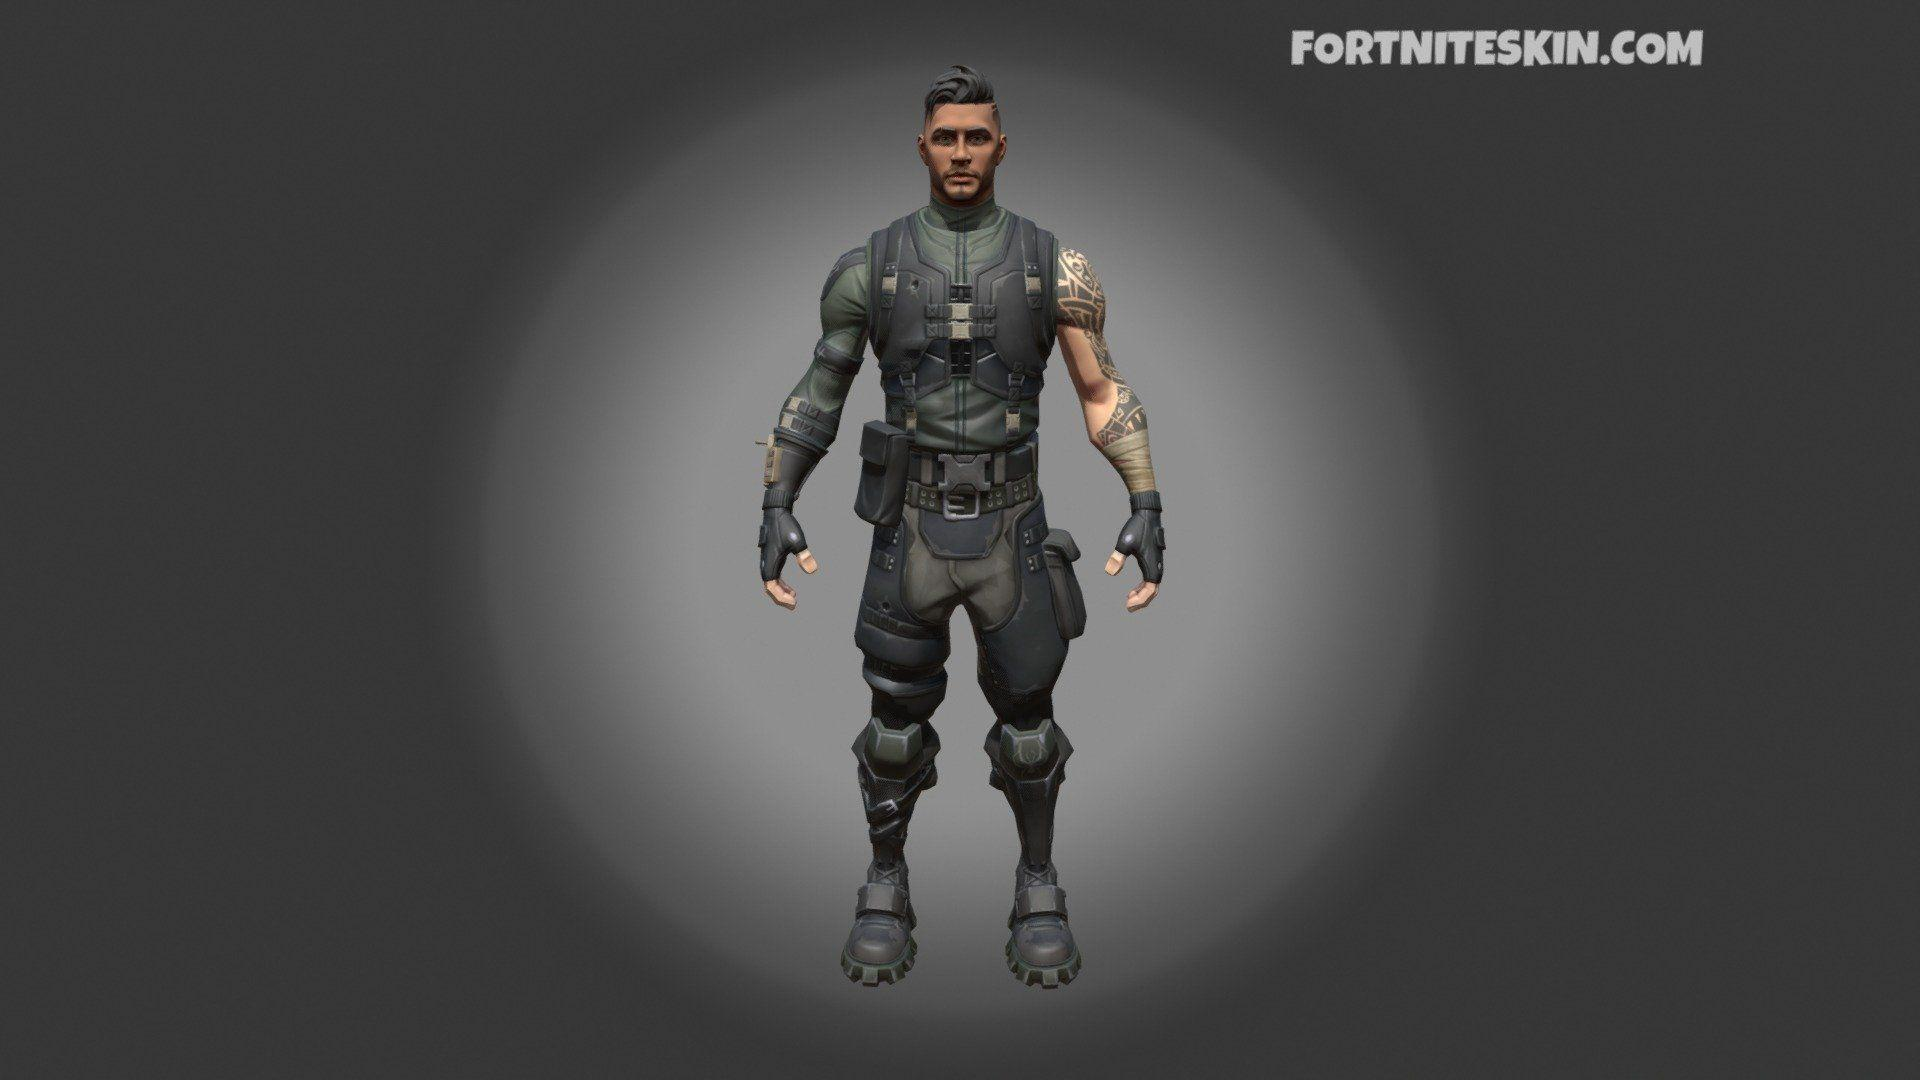 FORTNITE Outfit Squad Leader